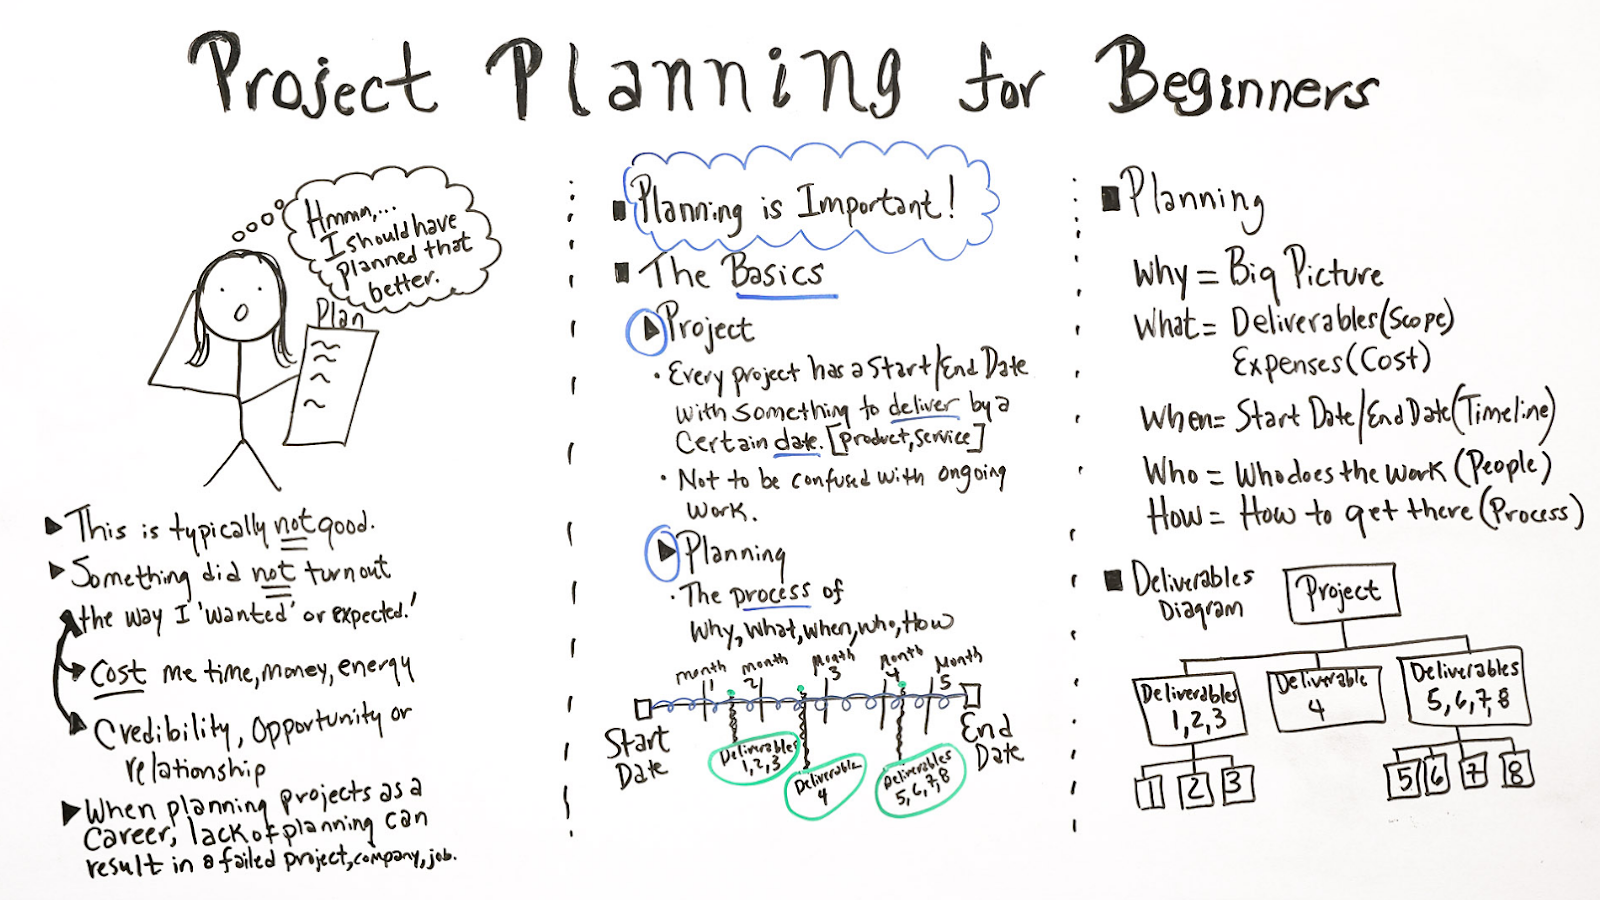 Project Planning for Beginners